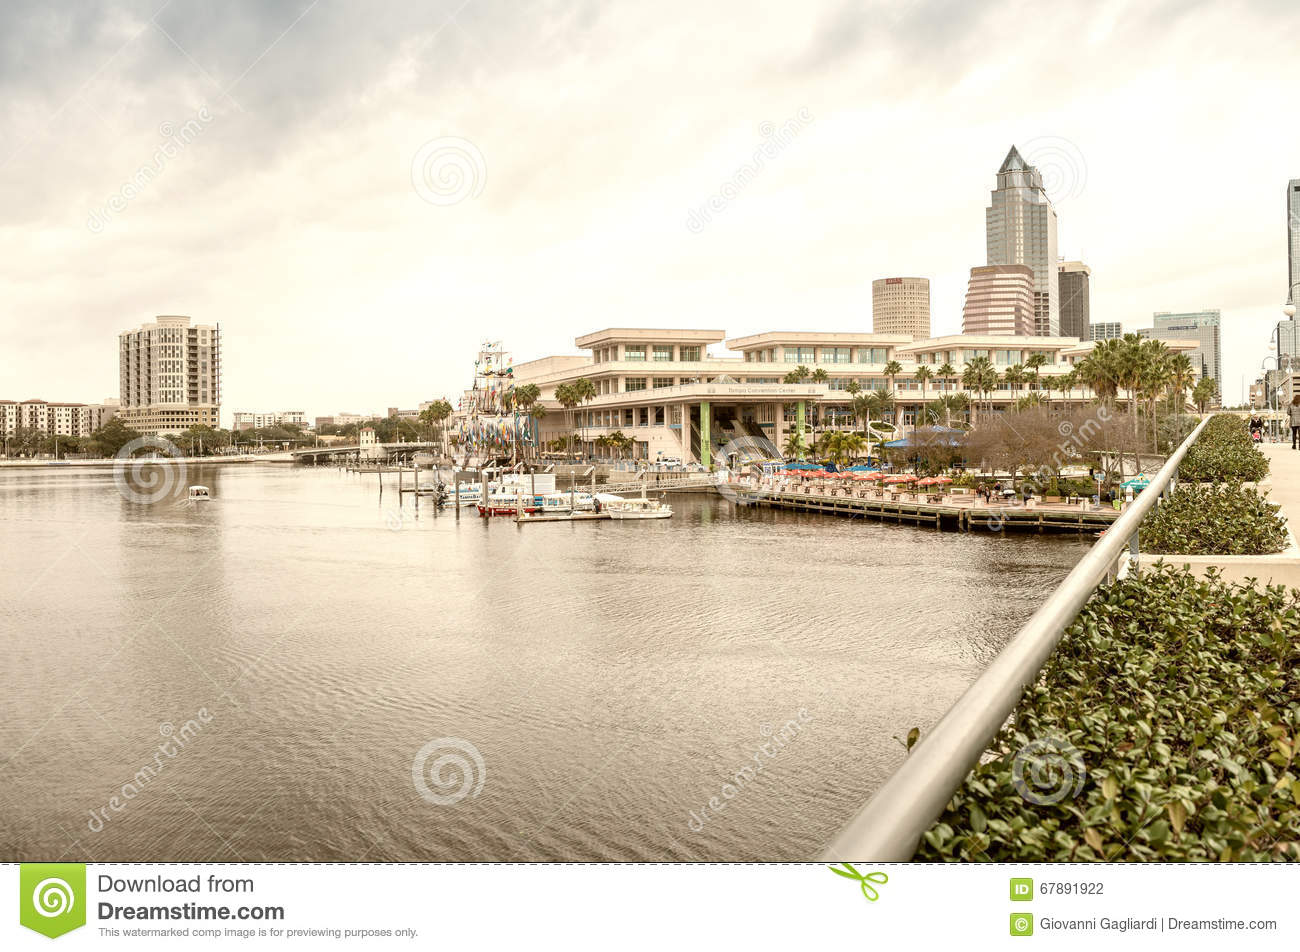 TAMPA, FL - JANUARY 15, 2016: City buildings and skyline. Tampa